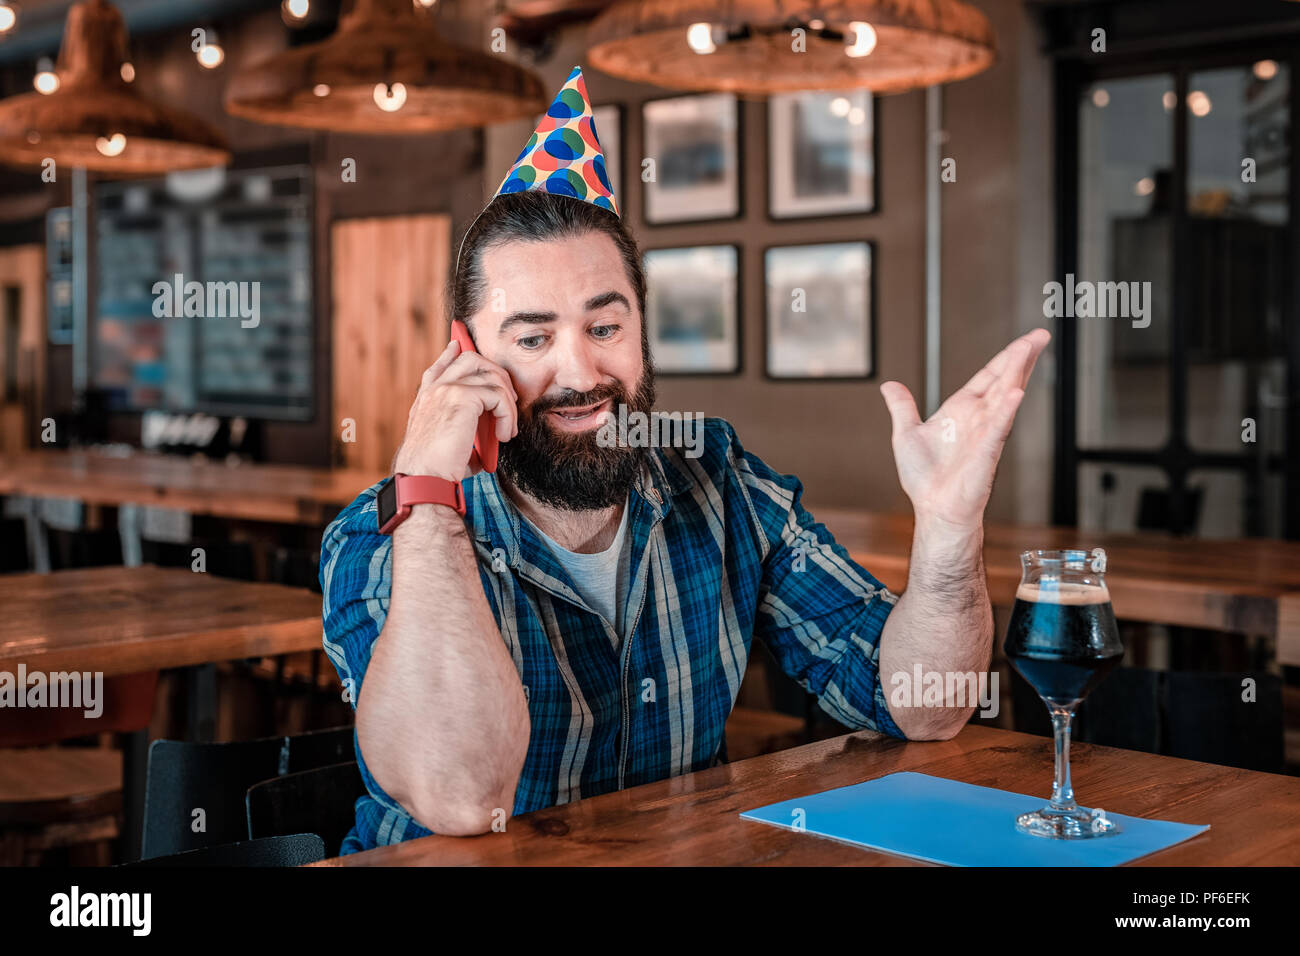 Birthday man feeling very emotional while speaking on the phone - Stock Image